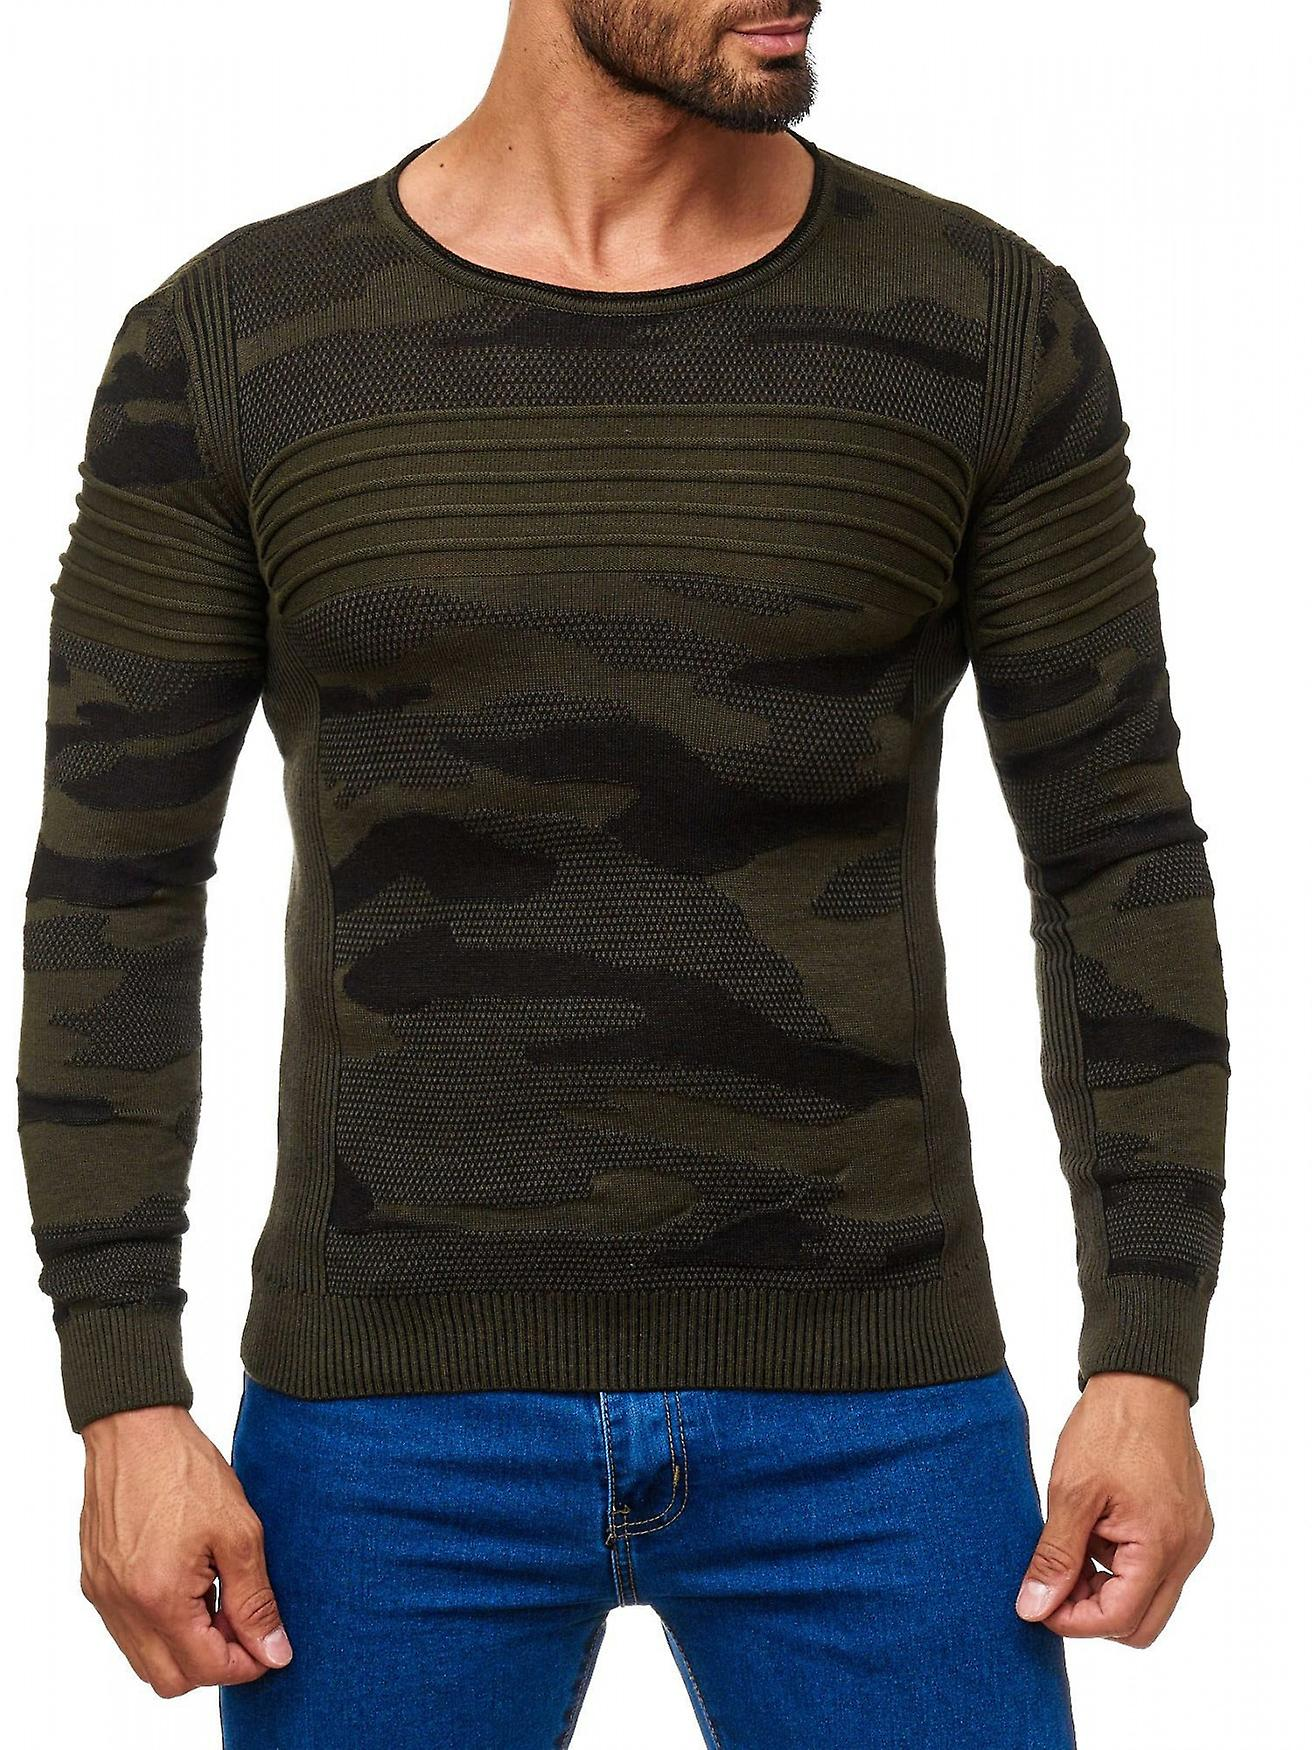 herren pullover camouflage muster o neck longsleeve. Black Bedroom Furniture Sets. Home Design Ideas